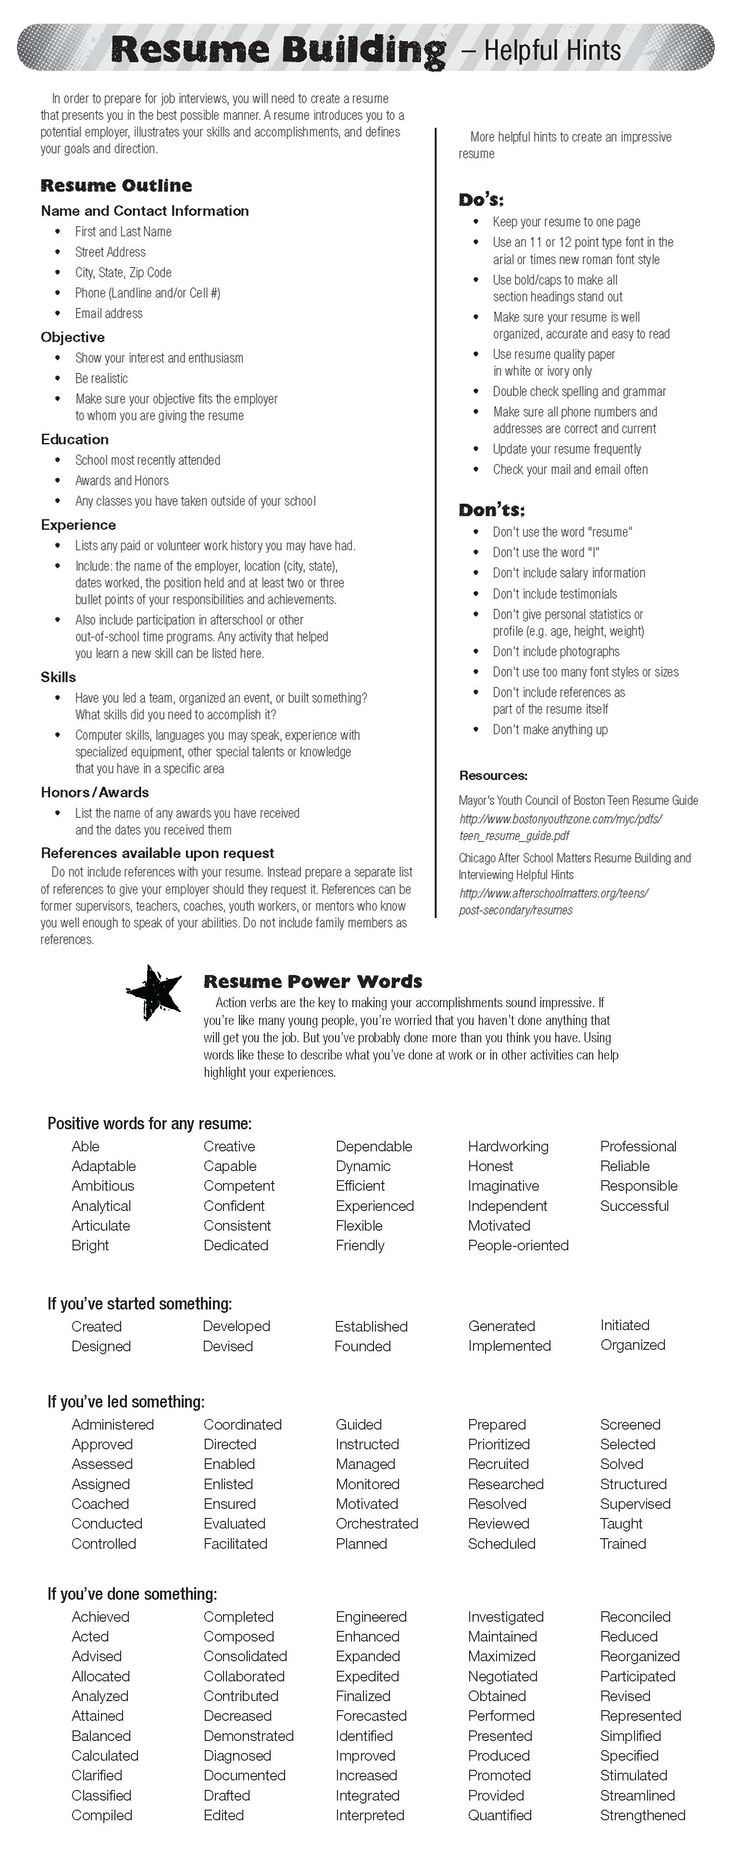 Opposenewapstandardsus  Splendid  Ideas About Resume On Pinterest  Cv Format Resume Cv And  With Inspiring  Ideas About Resume On Pinterest  Cv Format Resume Cv And Resume Templates With Delightful Film Producer Resume Also Power Verbs Resume In Addition Fill Out A Resume And Mission Statement For Resume As Well As Should Your Resume Be One Page Additionally Live Resume Builder From Pinterestcom With Opposenewapstandardsus  Inspiring  Ideas About Resume On Pinterest  Cv Format Resume Cv And  With Delightful  Ideas About Resume On Pinterest  Cv Format Resume Cv And Resume Templates And Splendid Film Producer Resume Also Power Verbs Resume In Addition Fill Out A Resume From Pinterestcom